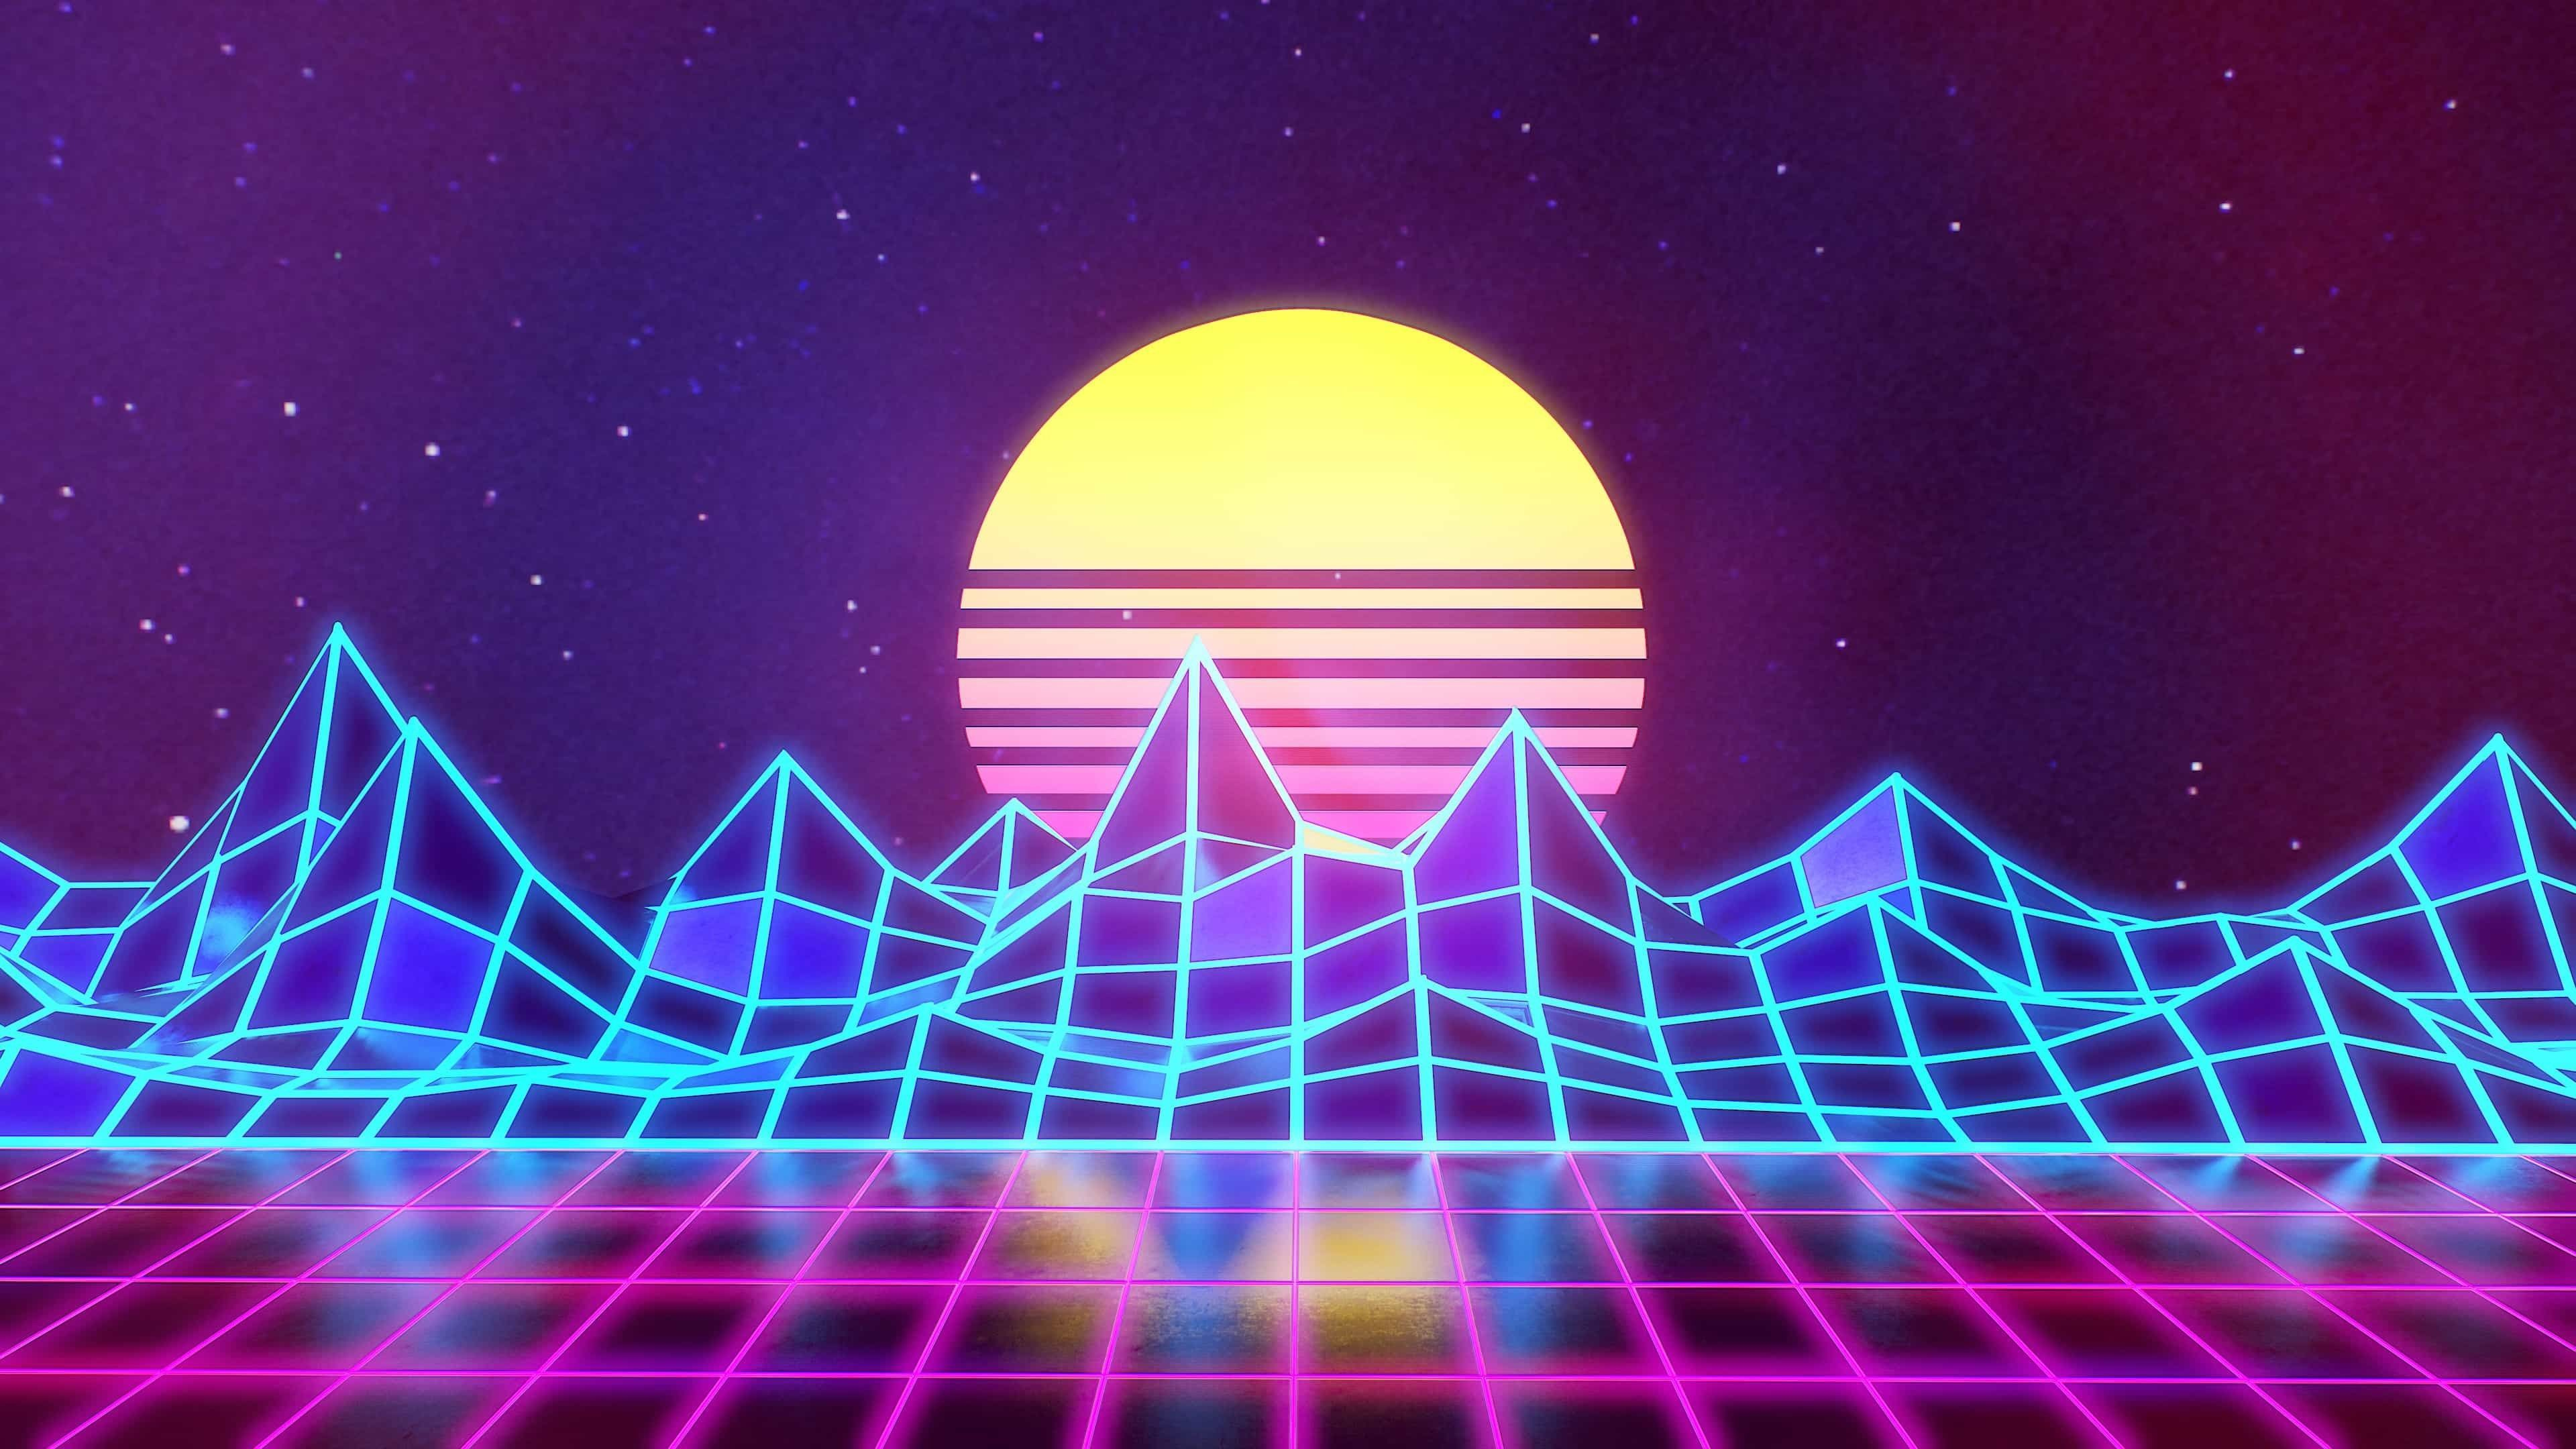 Aesthetic Vaporwave Ps4 Wallpapers - Wallpaper Cave